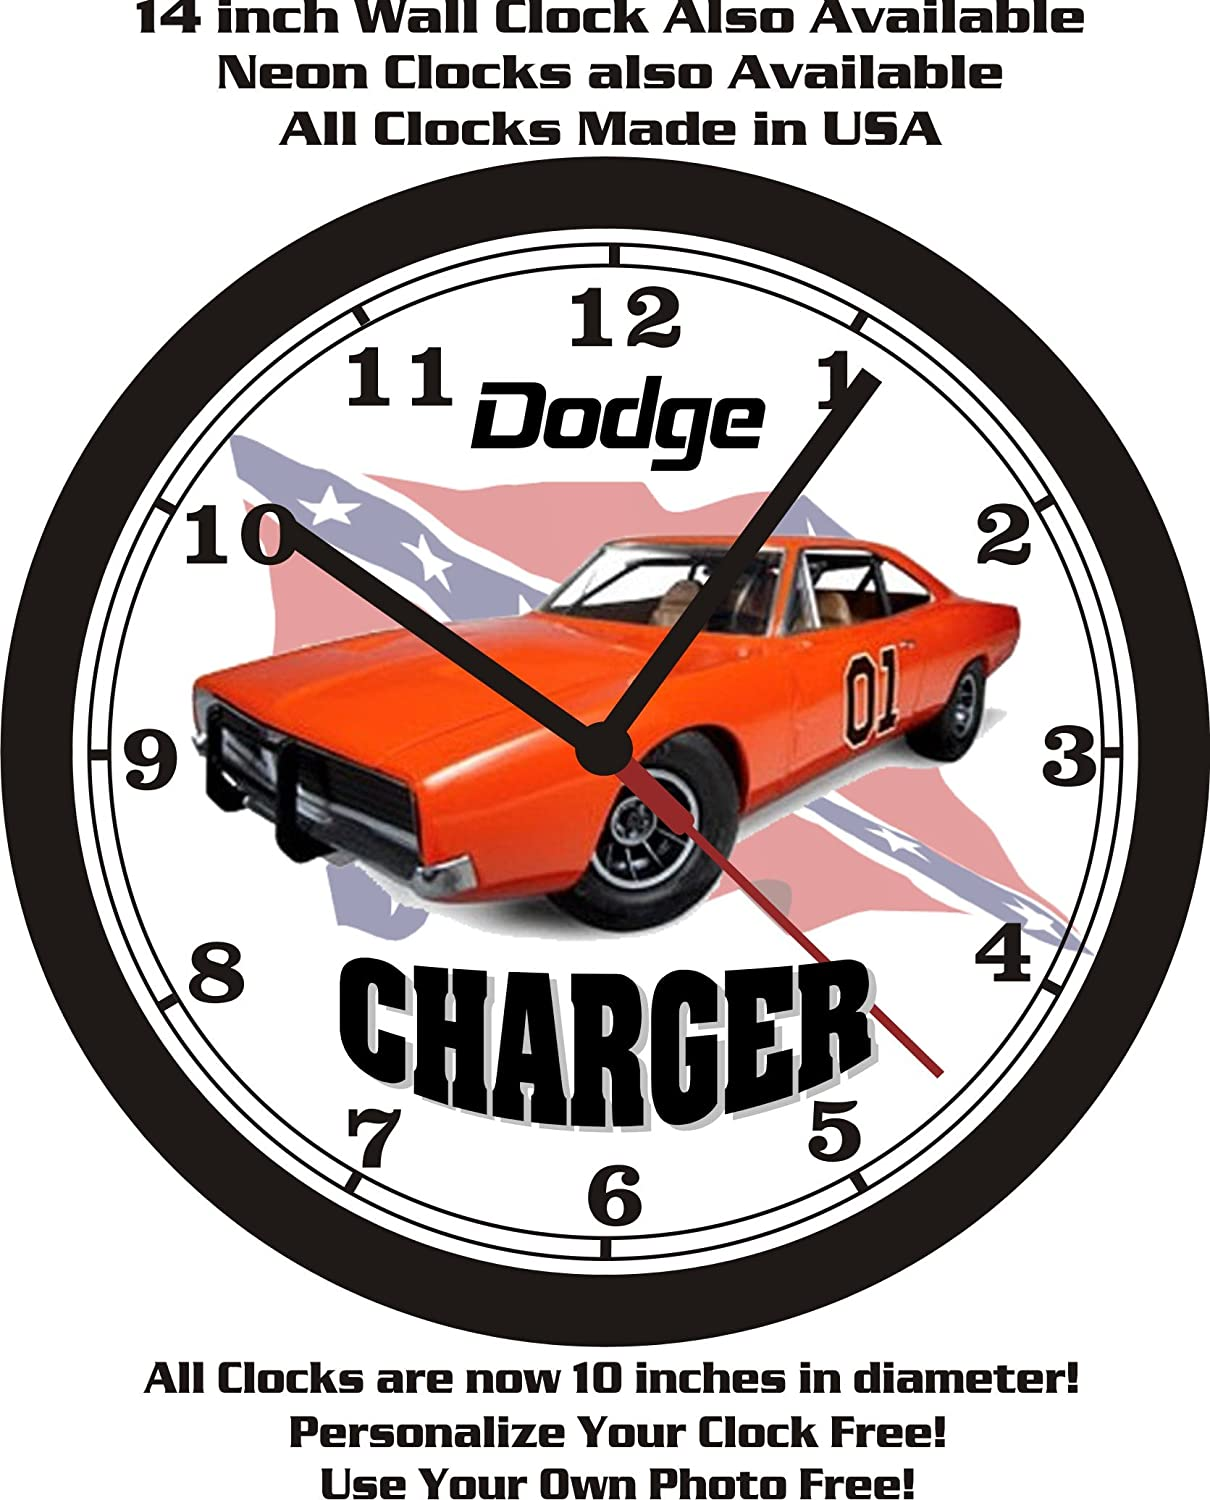 Amazon 1969 dodge charger general lee wall clock free usa amazon 1969 dodge charger general lee wall clock free usa ship dukes of hazard home kitchen amipublicfo Gallery